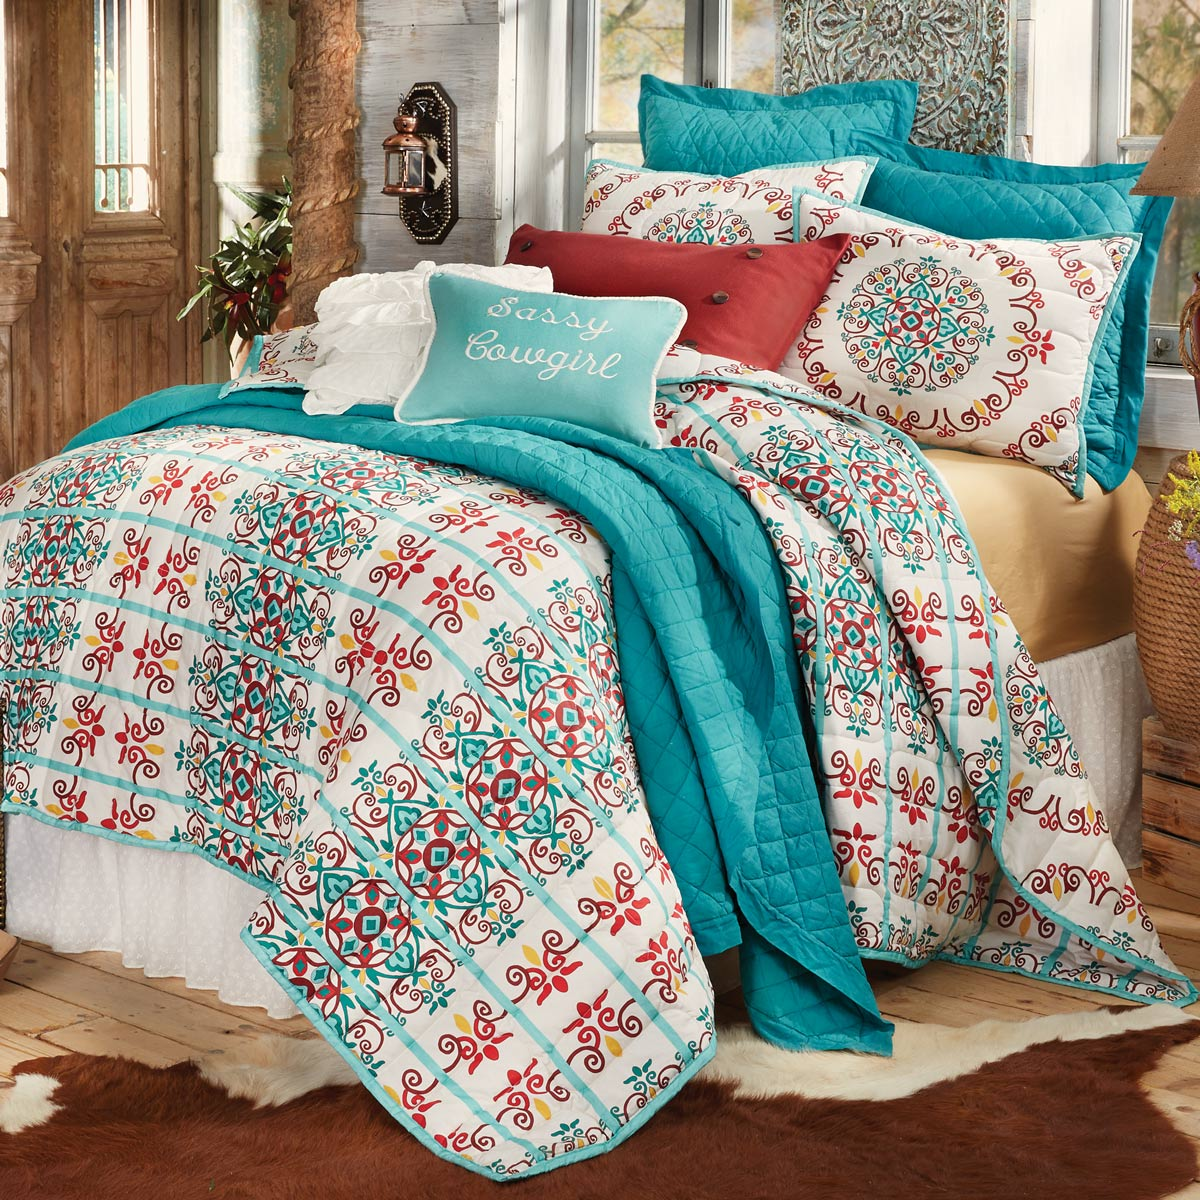 Black Forest Decor Talavera quilt bed set - twin